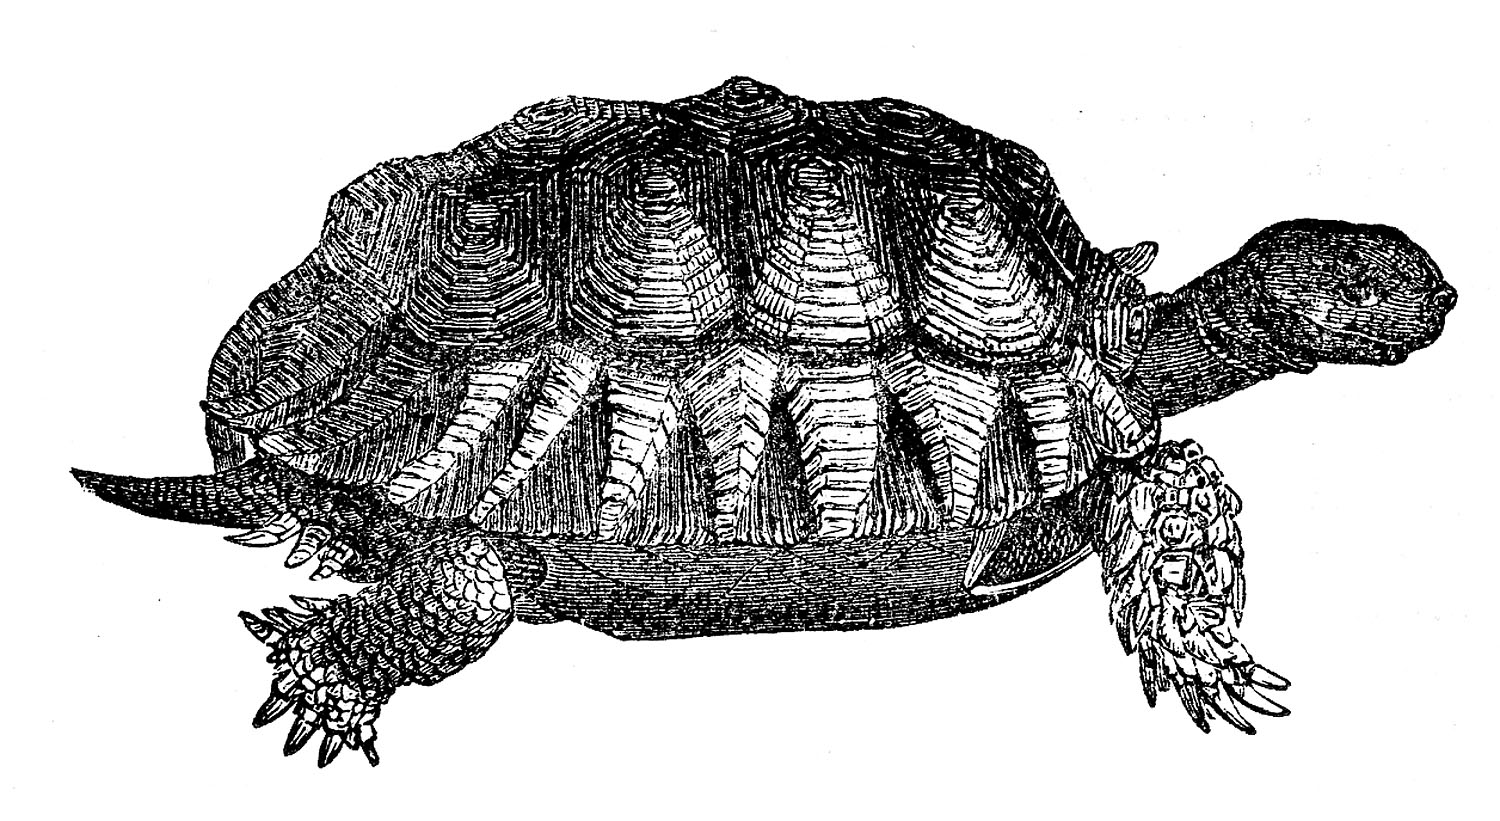 Vintage Clip Art - Turtles and Turtle Skeleton - The Graphics Fairy